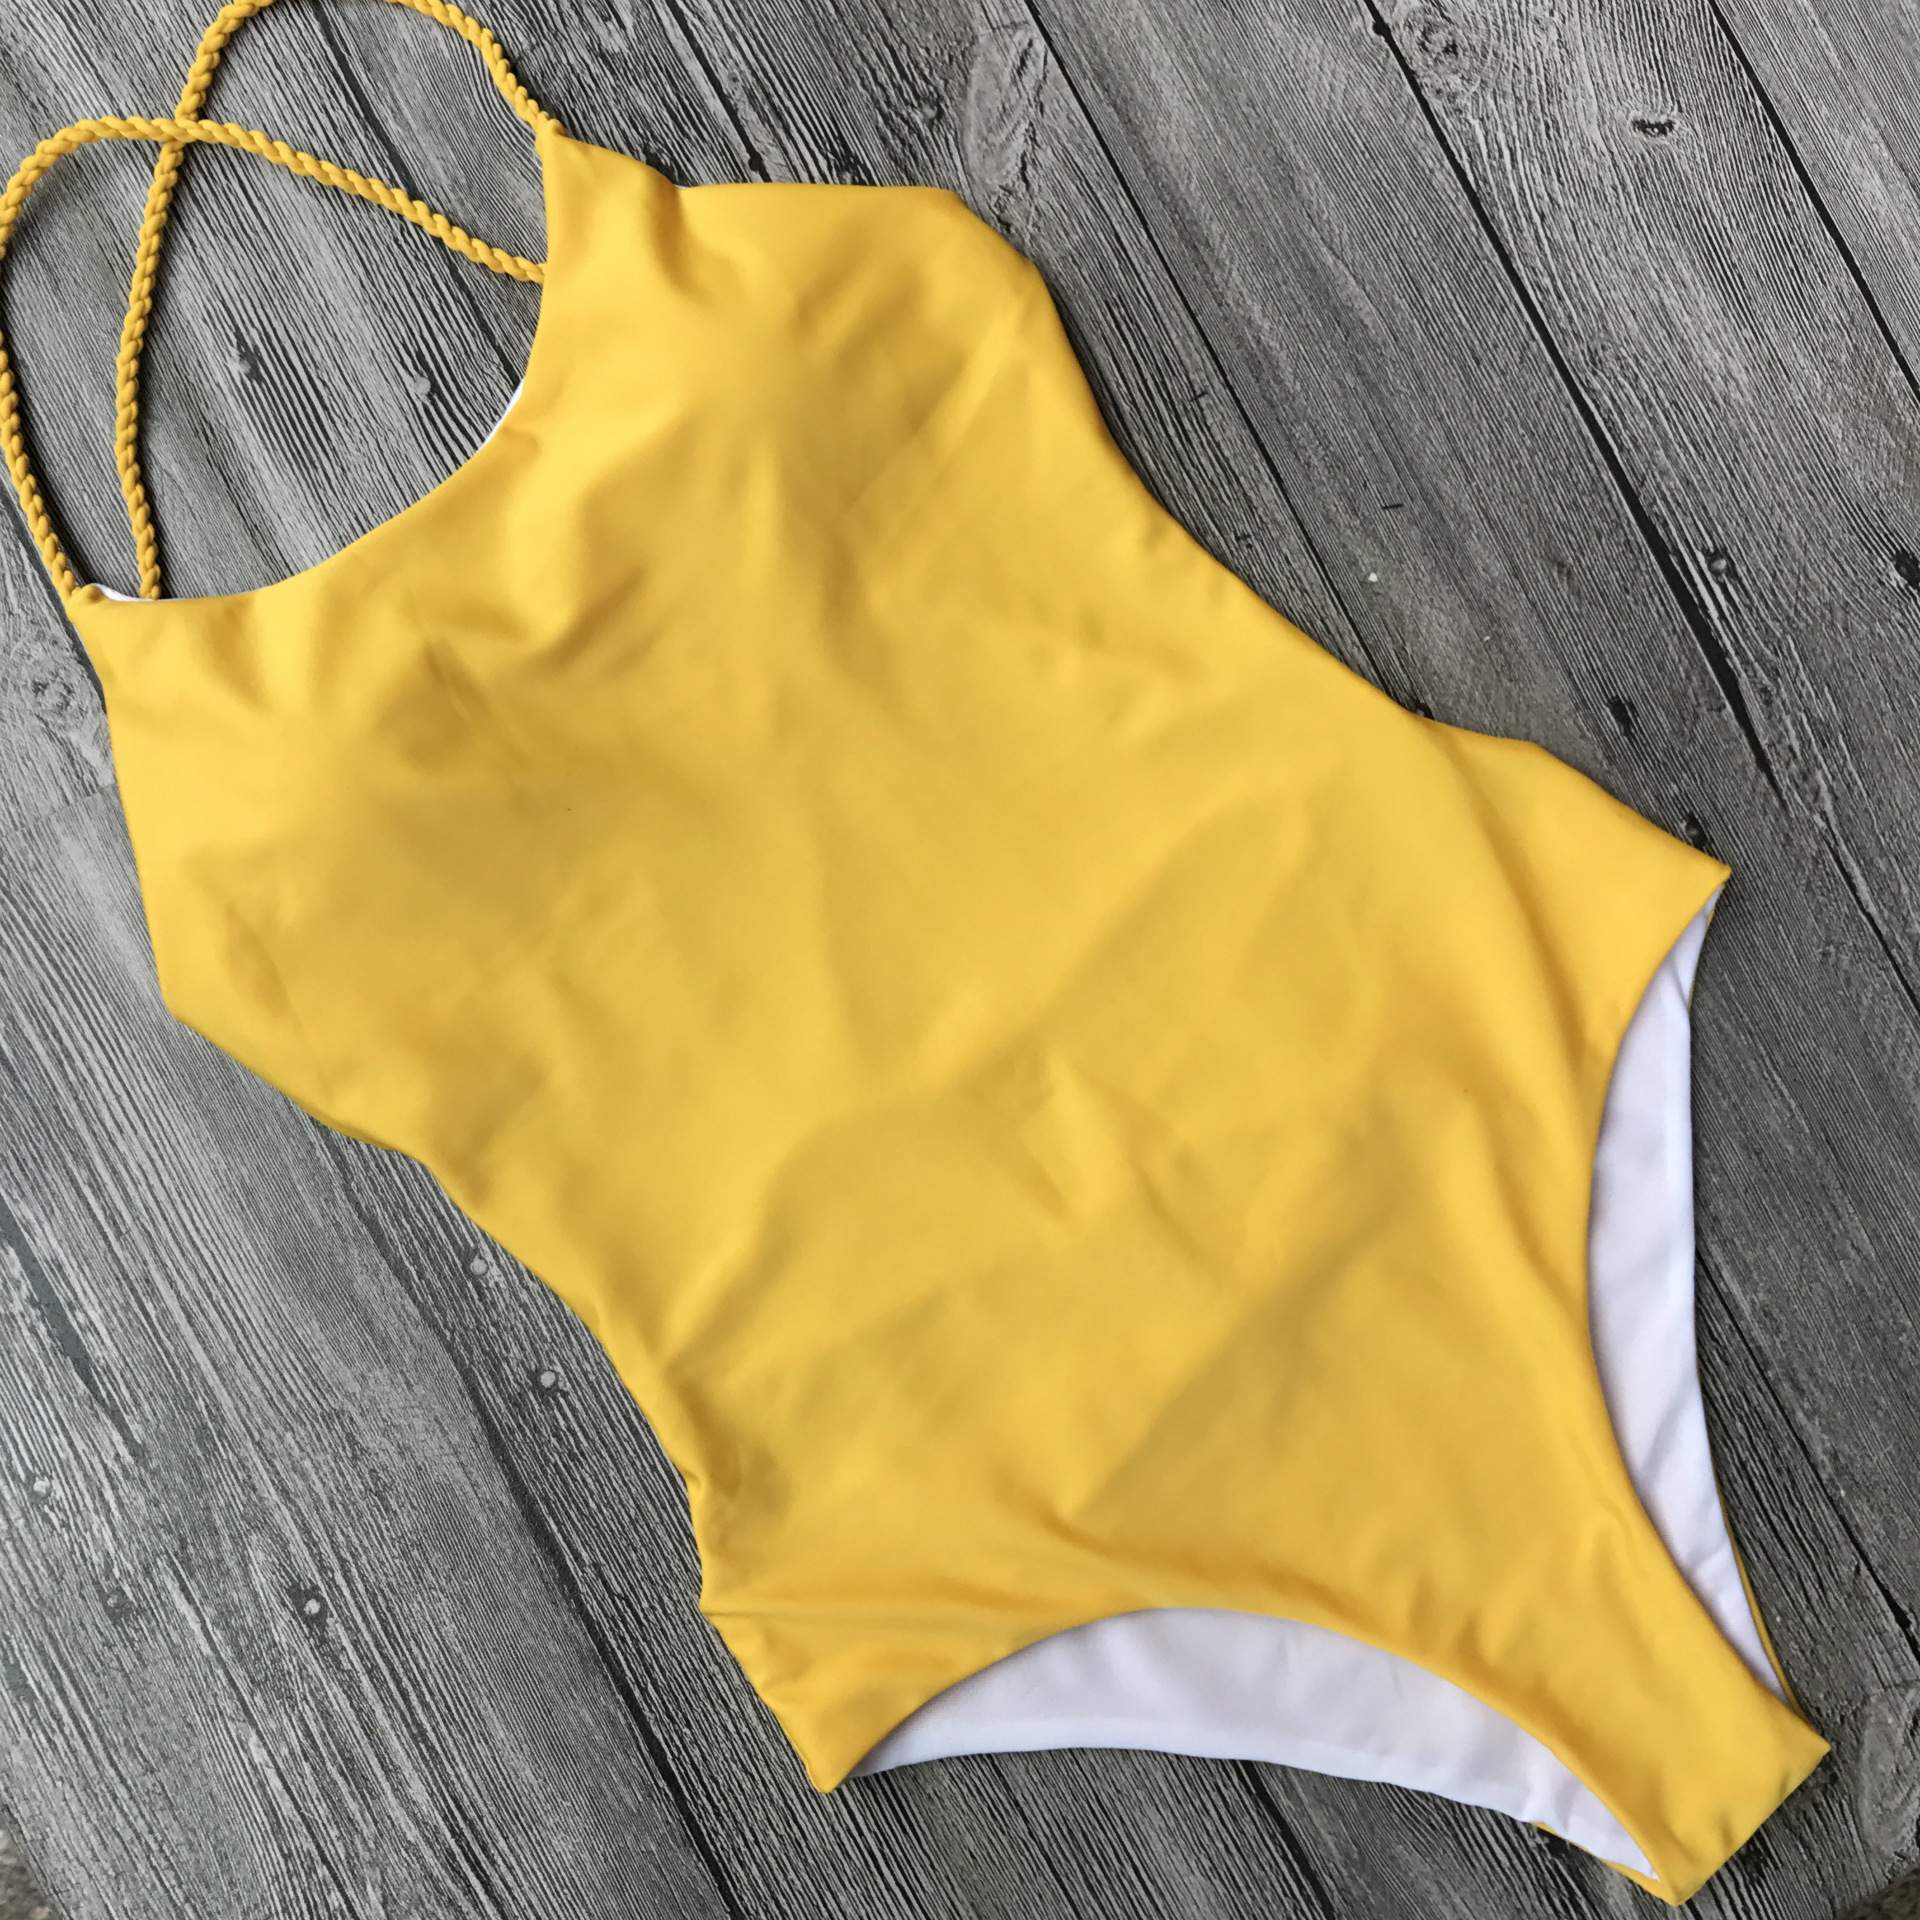 PRYDYC Women 39 s swimsuit solid color push up big backless sexy one piece swimwear high waist high elastic lace bikini in Body Suits from Sports amp Entertainment